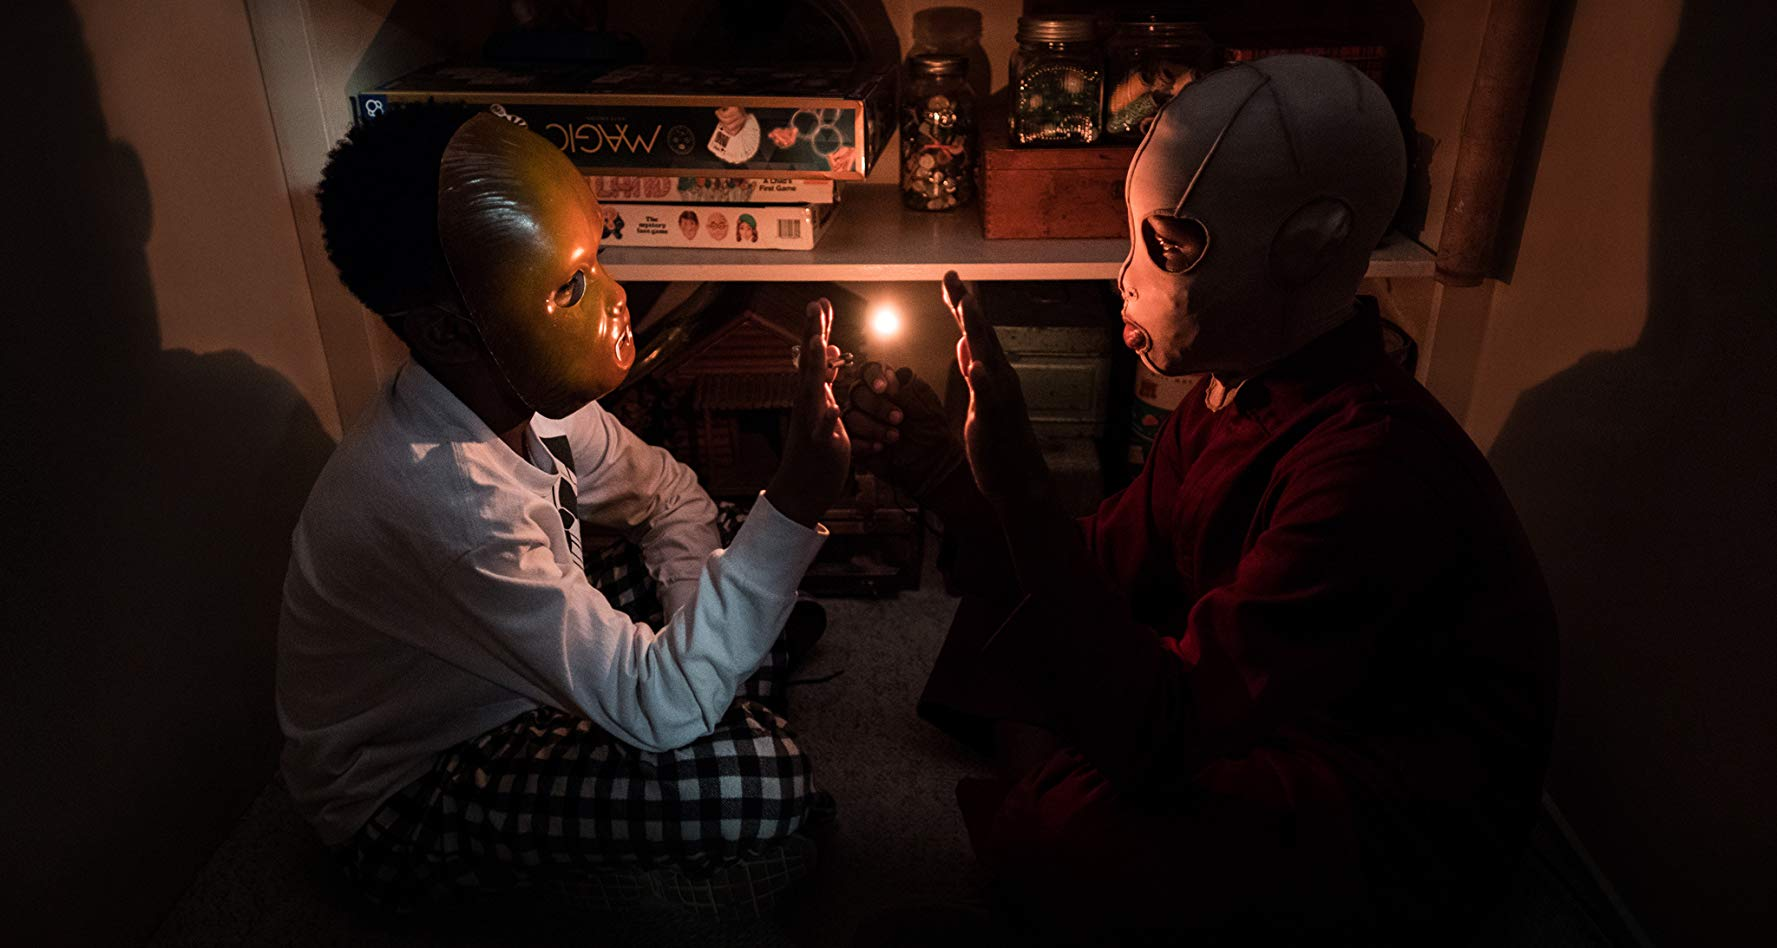 Us (2019) - Jordan Peele horror movie